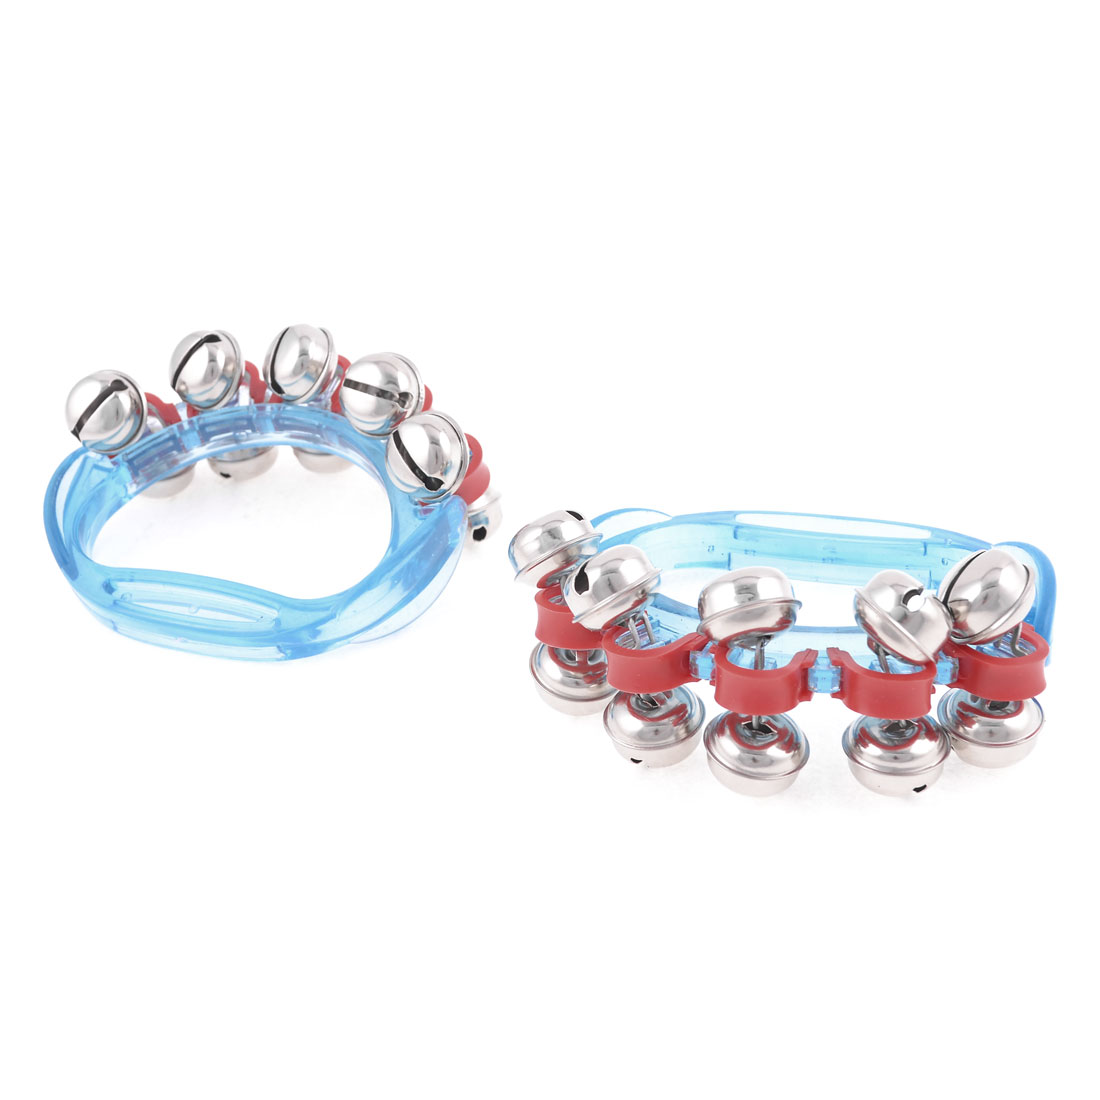 Clear Blue 10 Bells Sound Hand Shaking Bell Toy Pair for Child